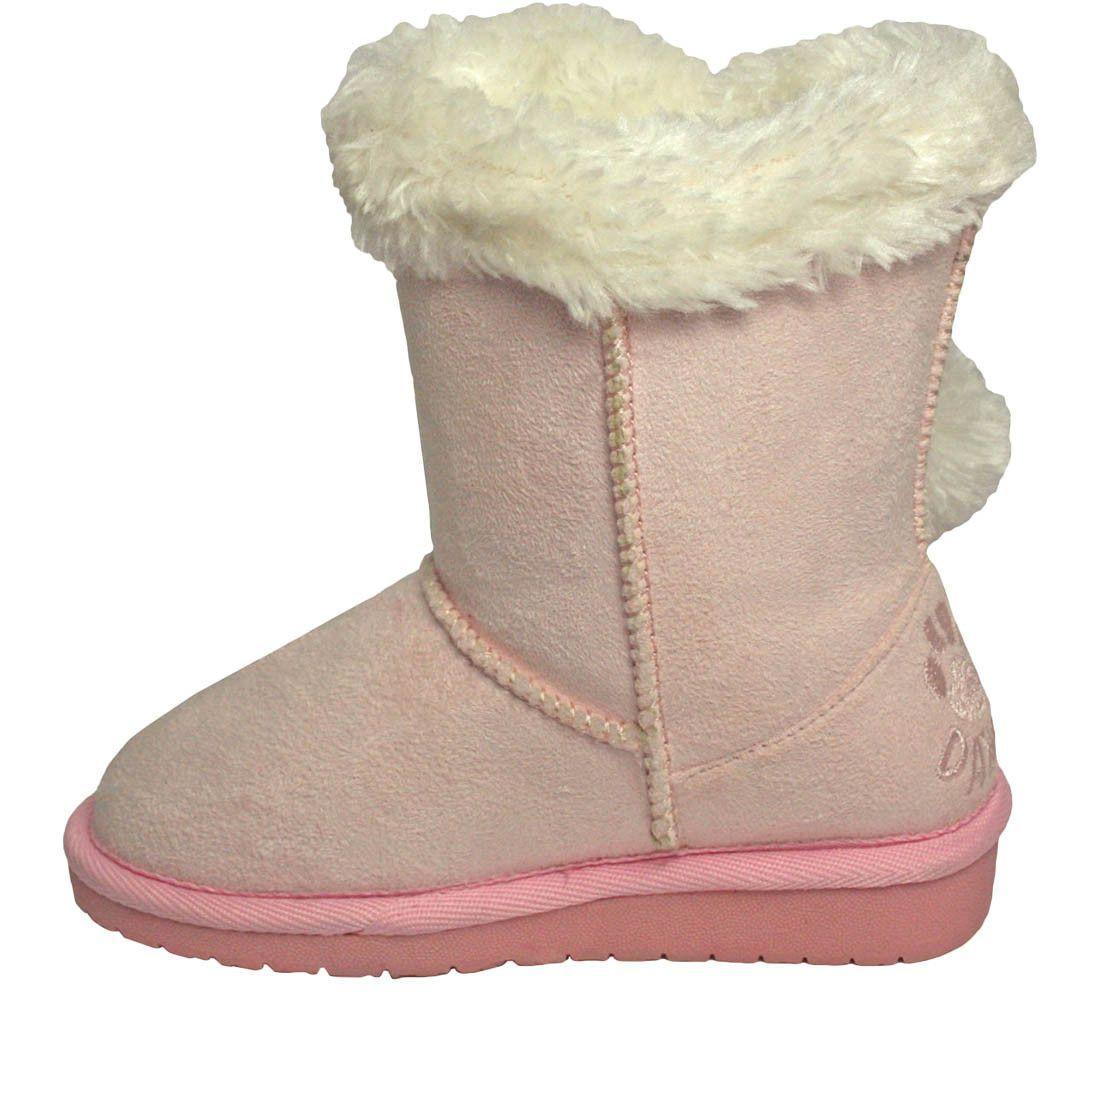 Girls' Side Tie Microfiber Boots - Pink (Special Offer)